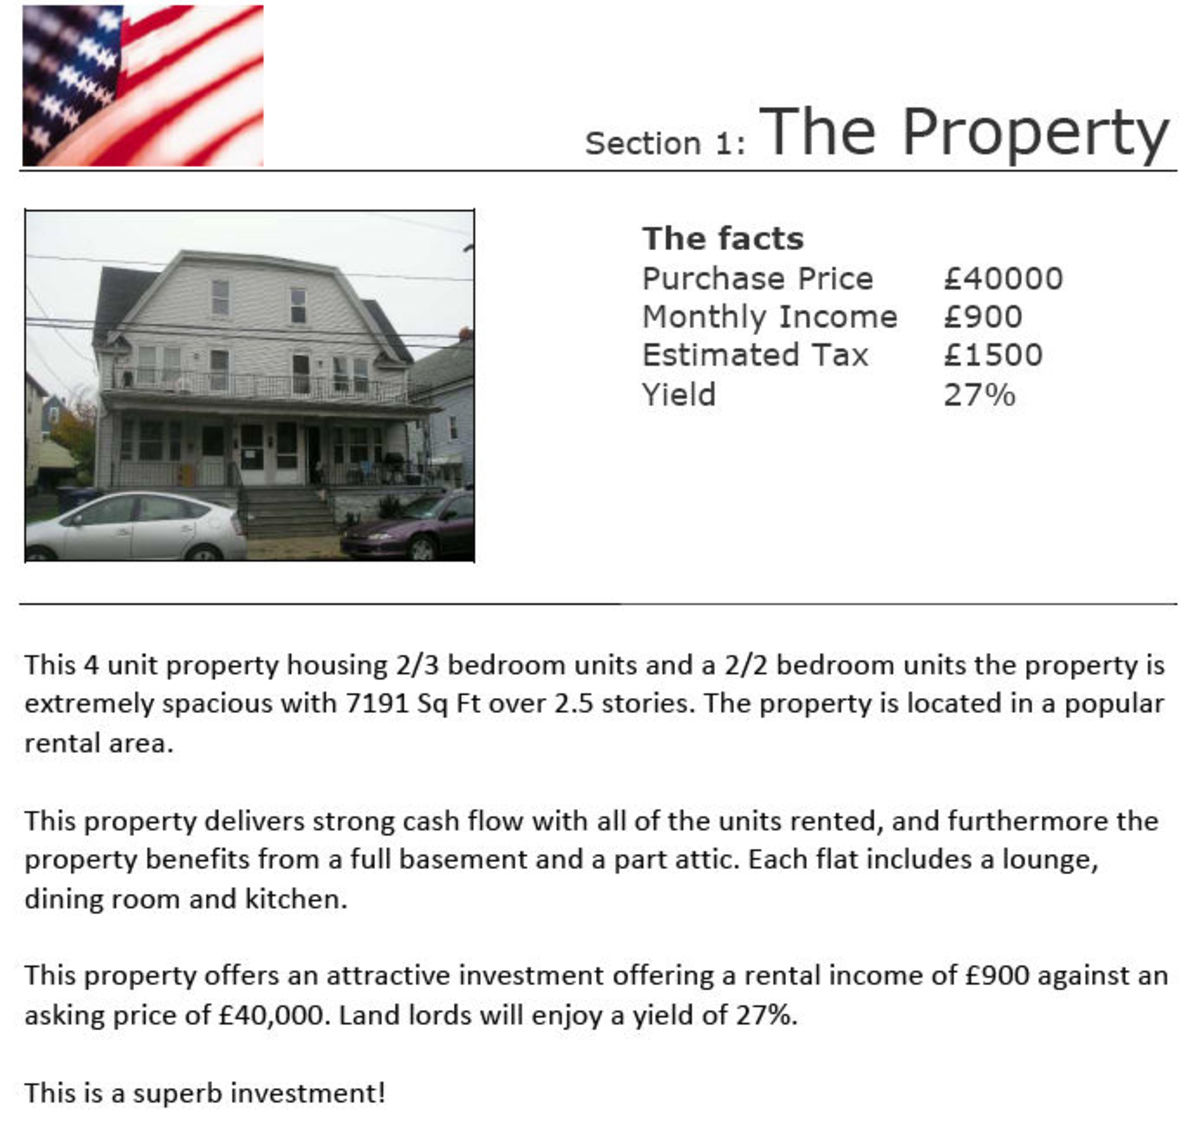 "My second USA property ""sourced"" by Ajay Ahuja. The so-called facts were all lies. Upon purchase there were ZERO tenants!"